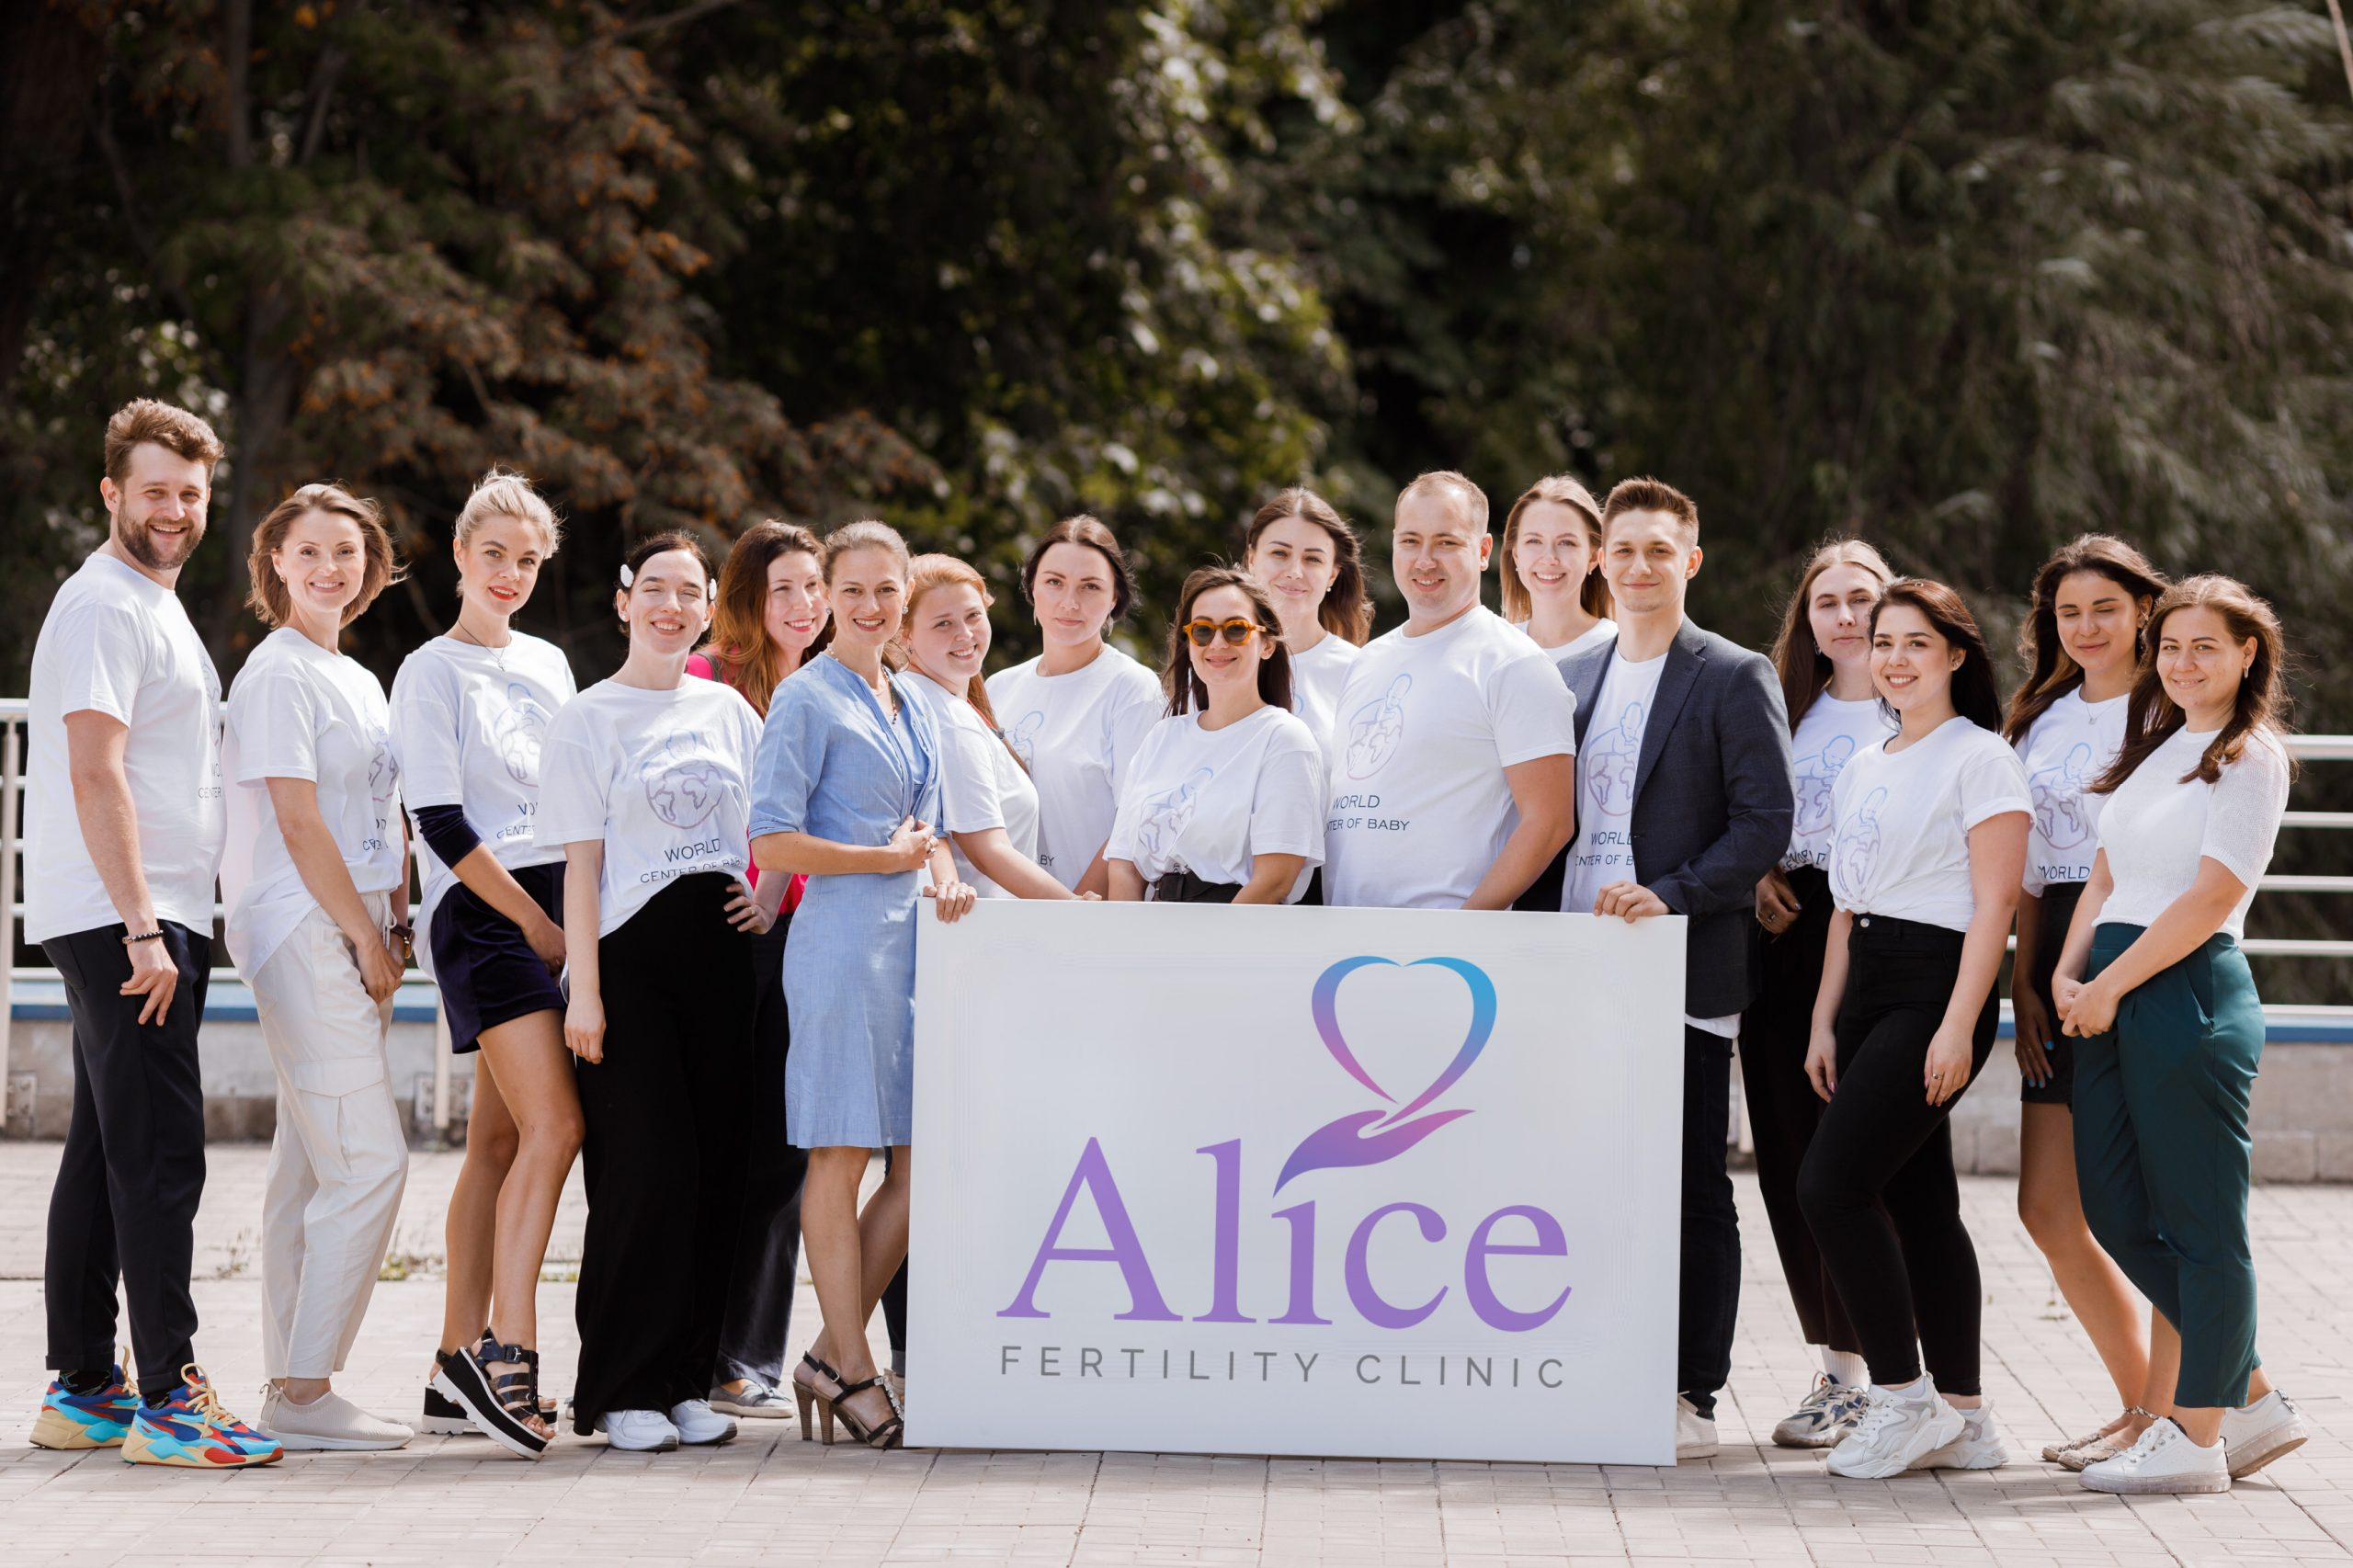 Alice Fertility Clinic